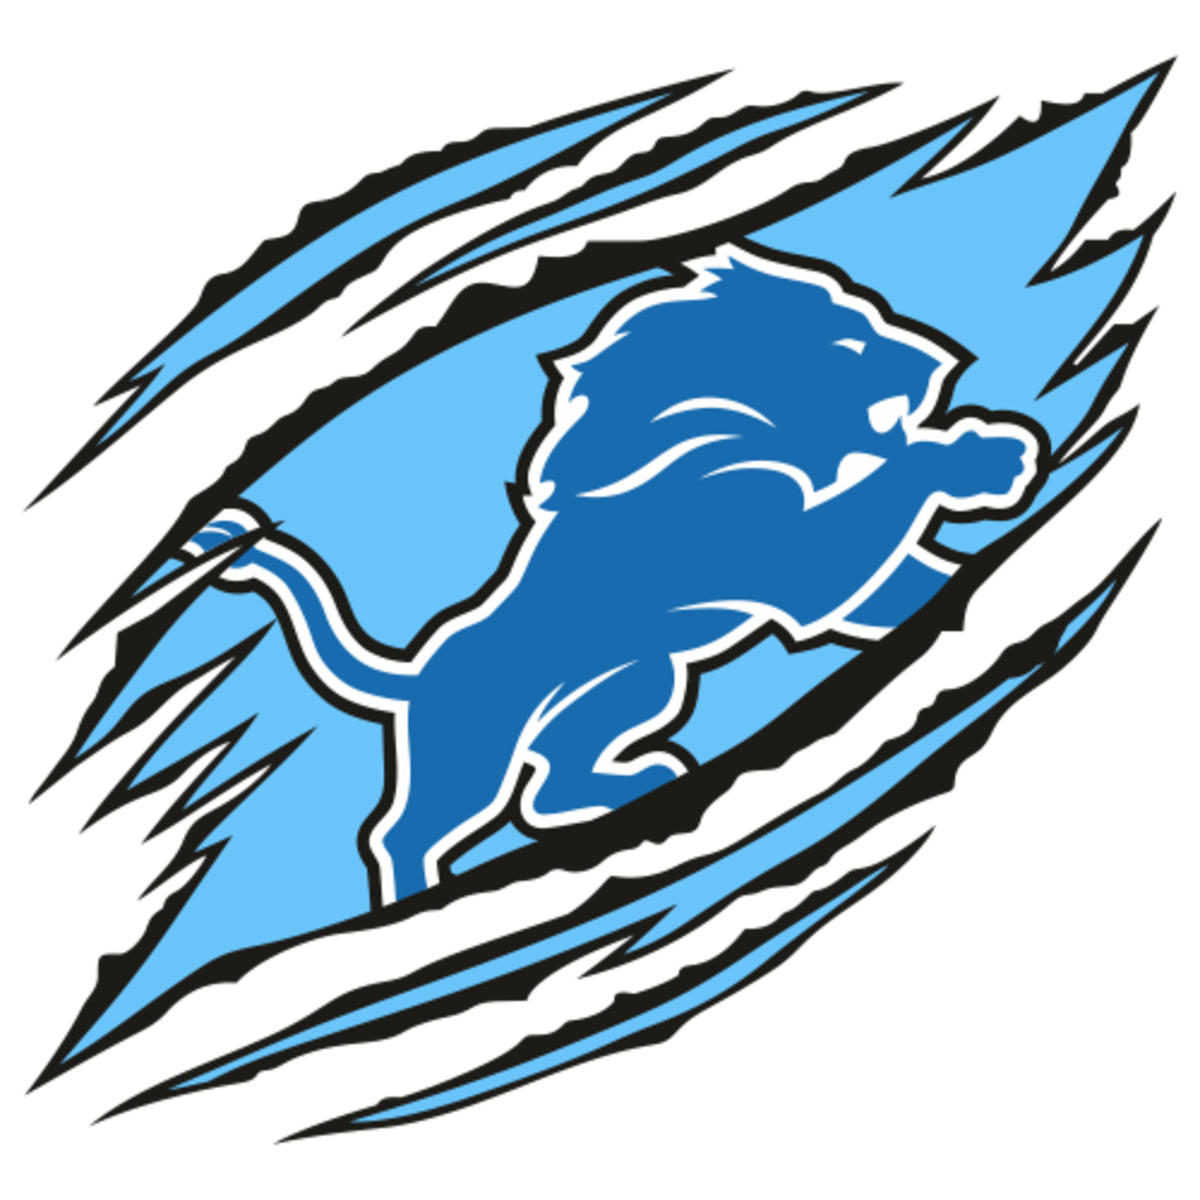 In 1953, the Detroit Lions were the NFL champions.